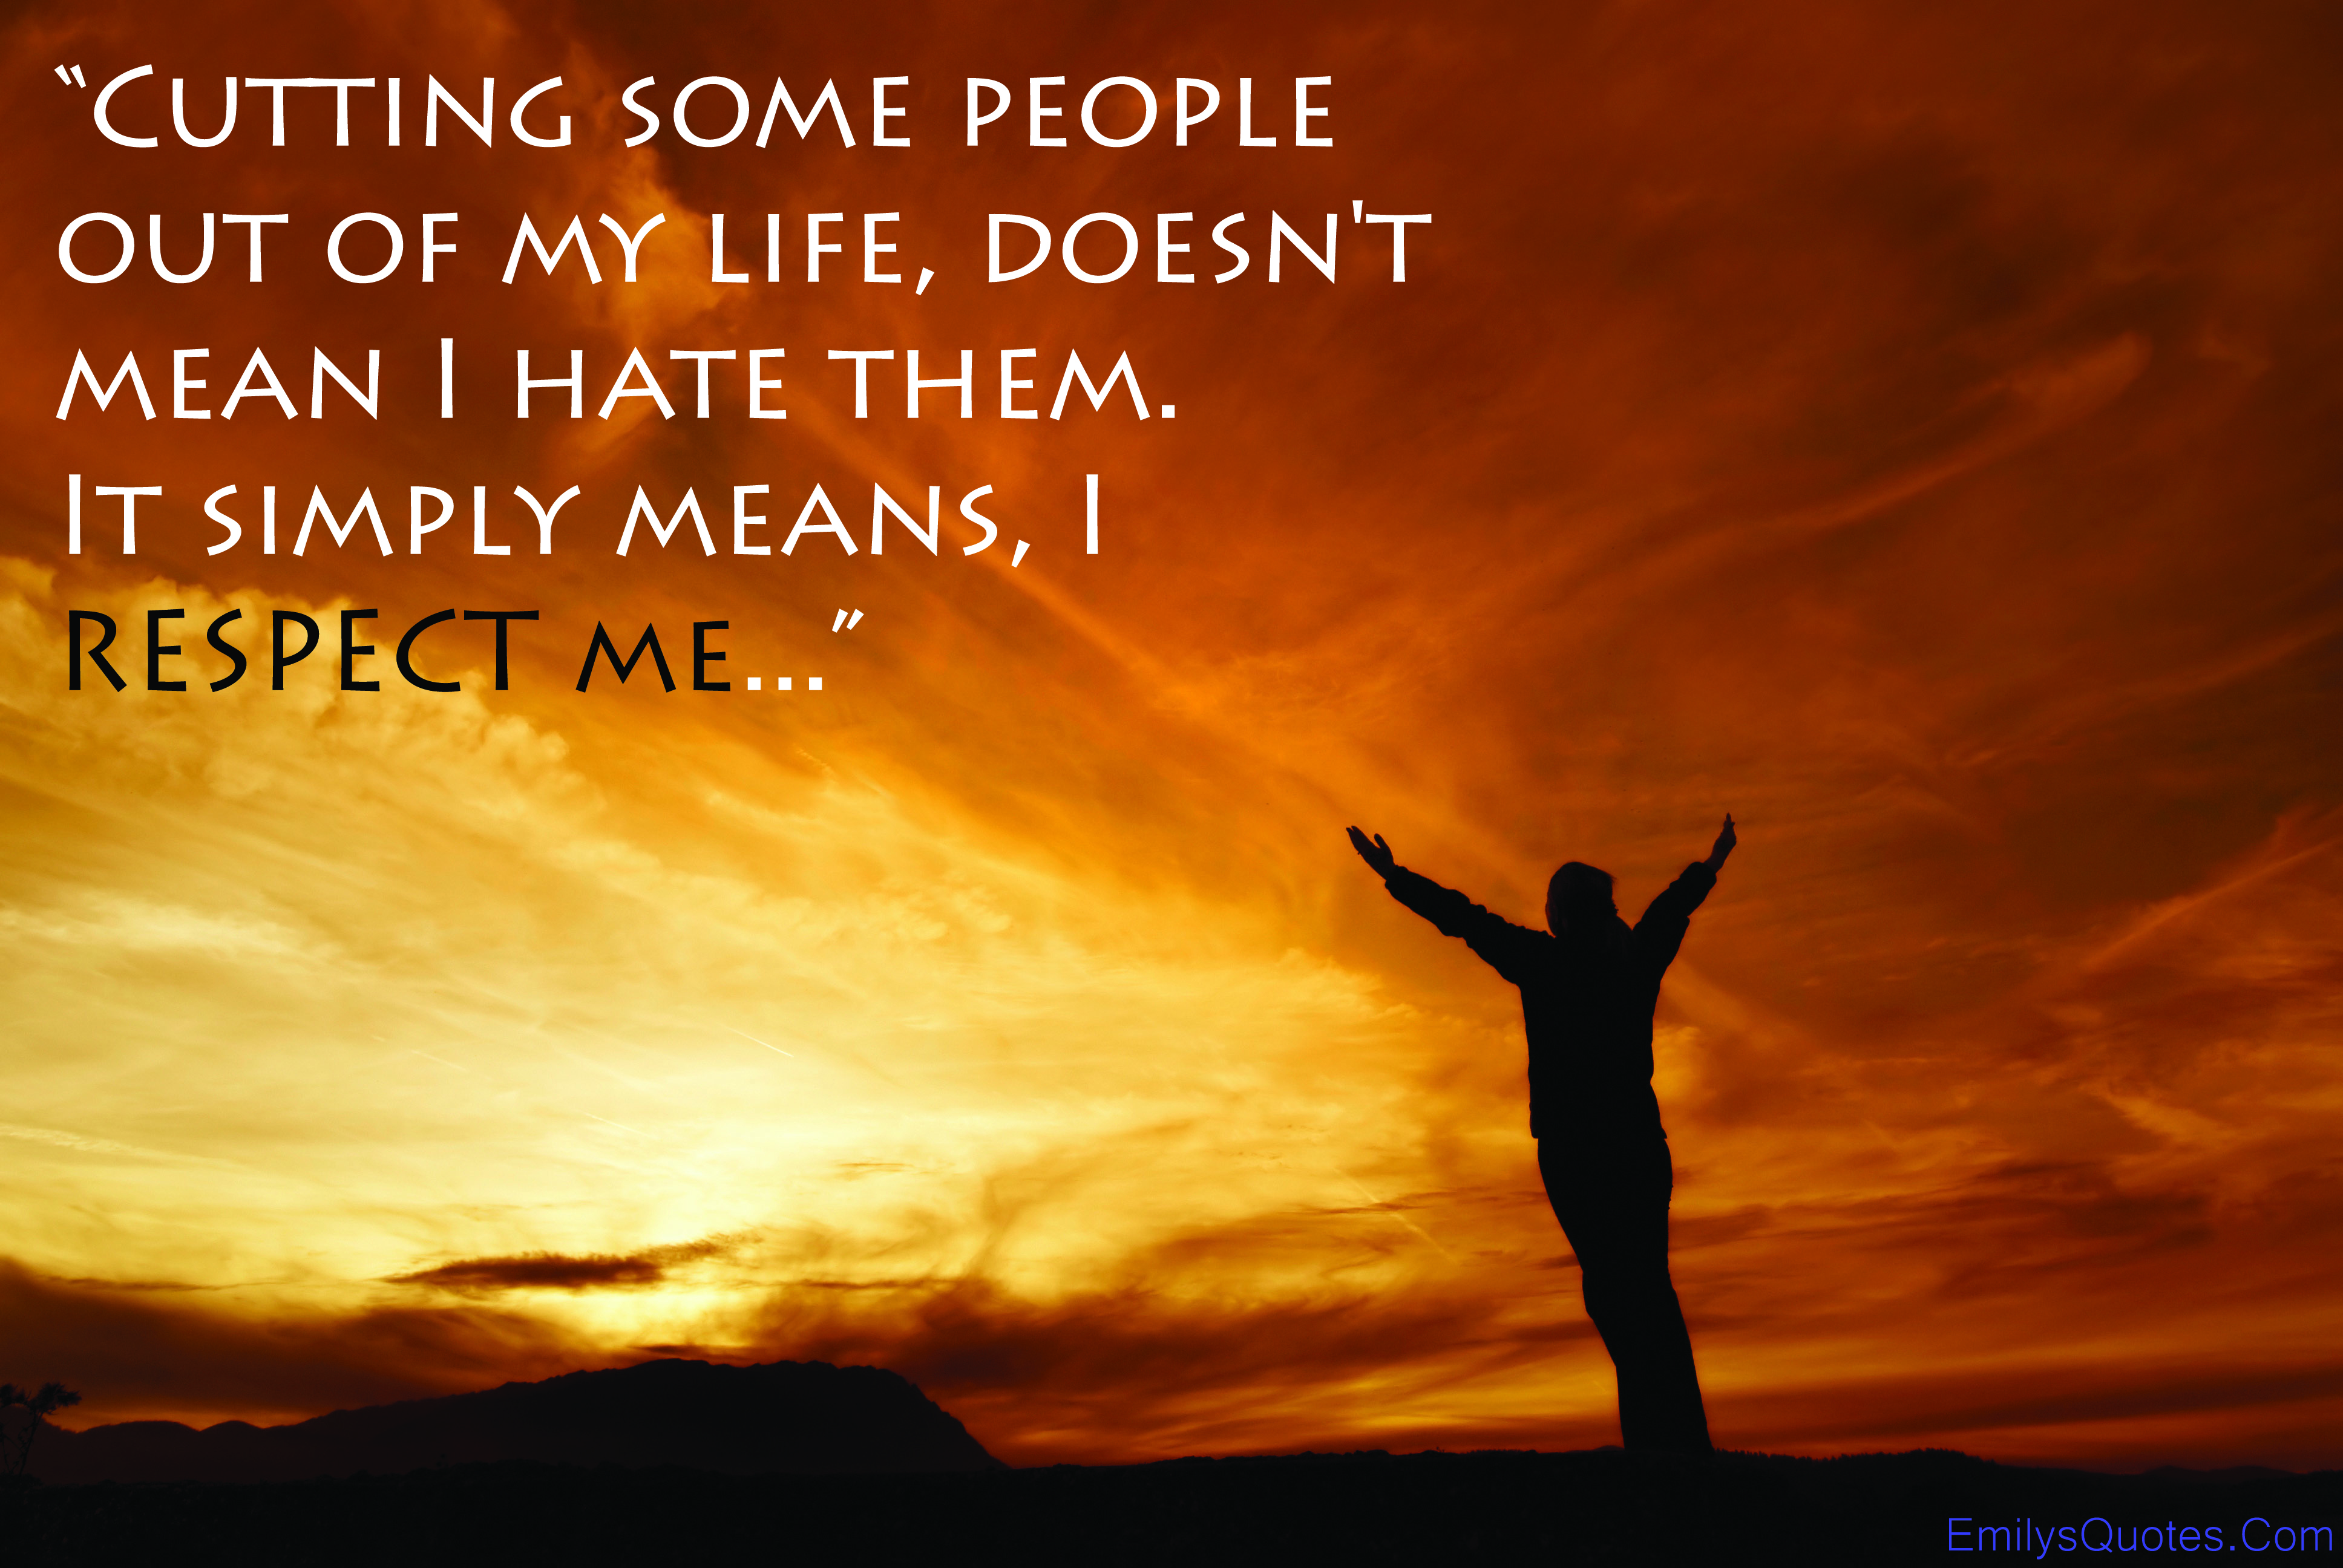 """Cutting Some People Out Of My LIfe, Doesn't Mean I Hate Them. It Simply Means, I Respect Me."""